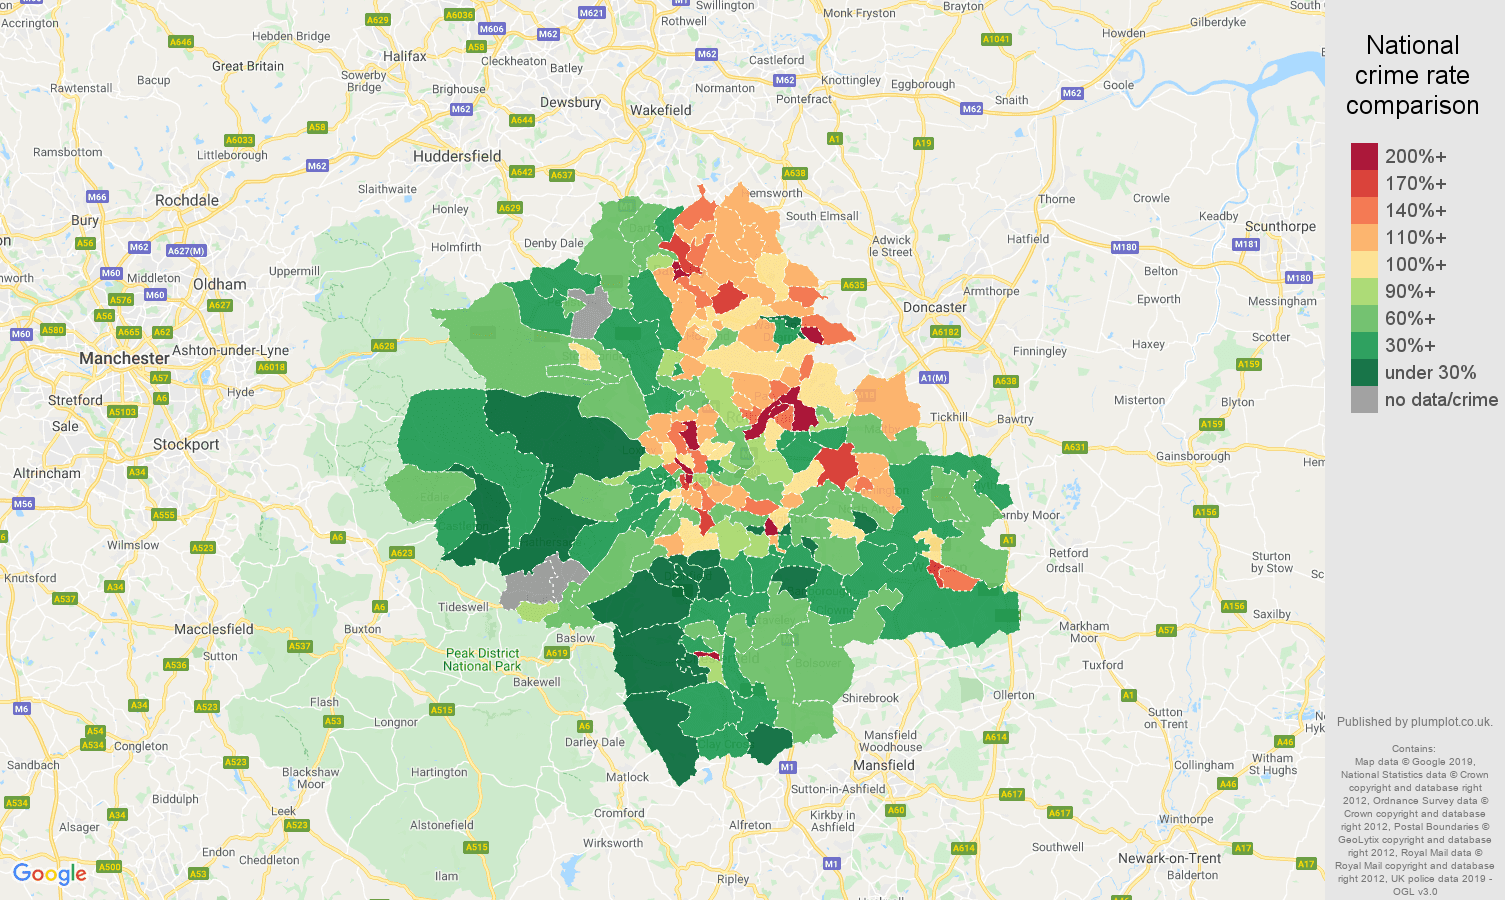 Sheffield public order crime rate comparison map